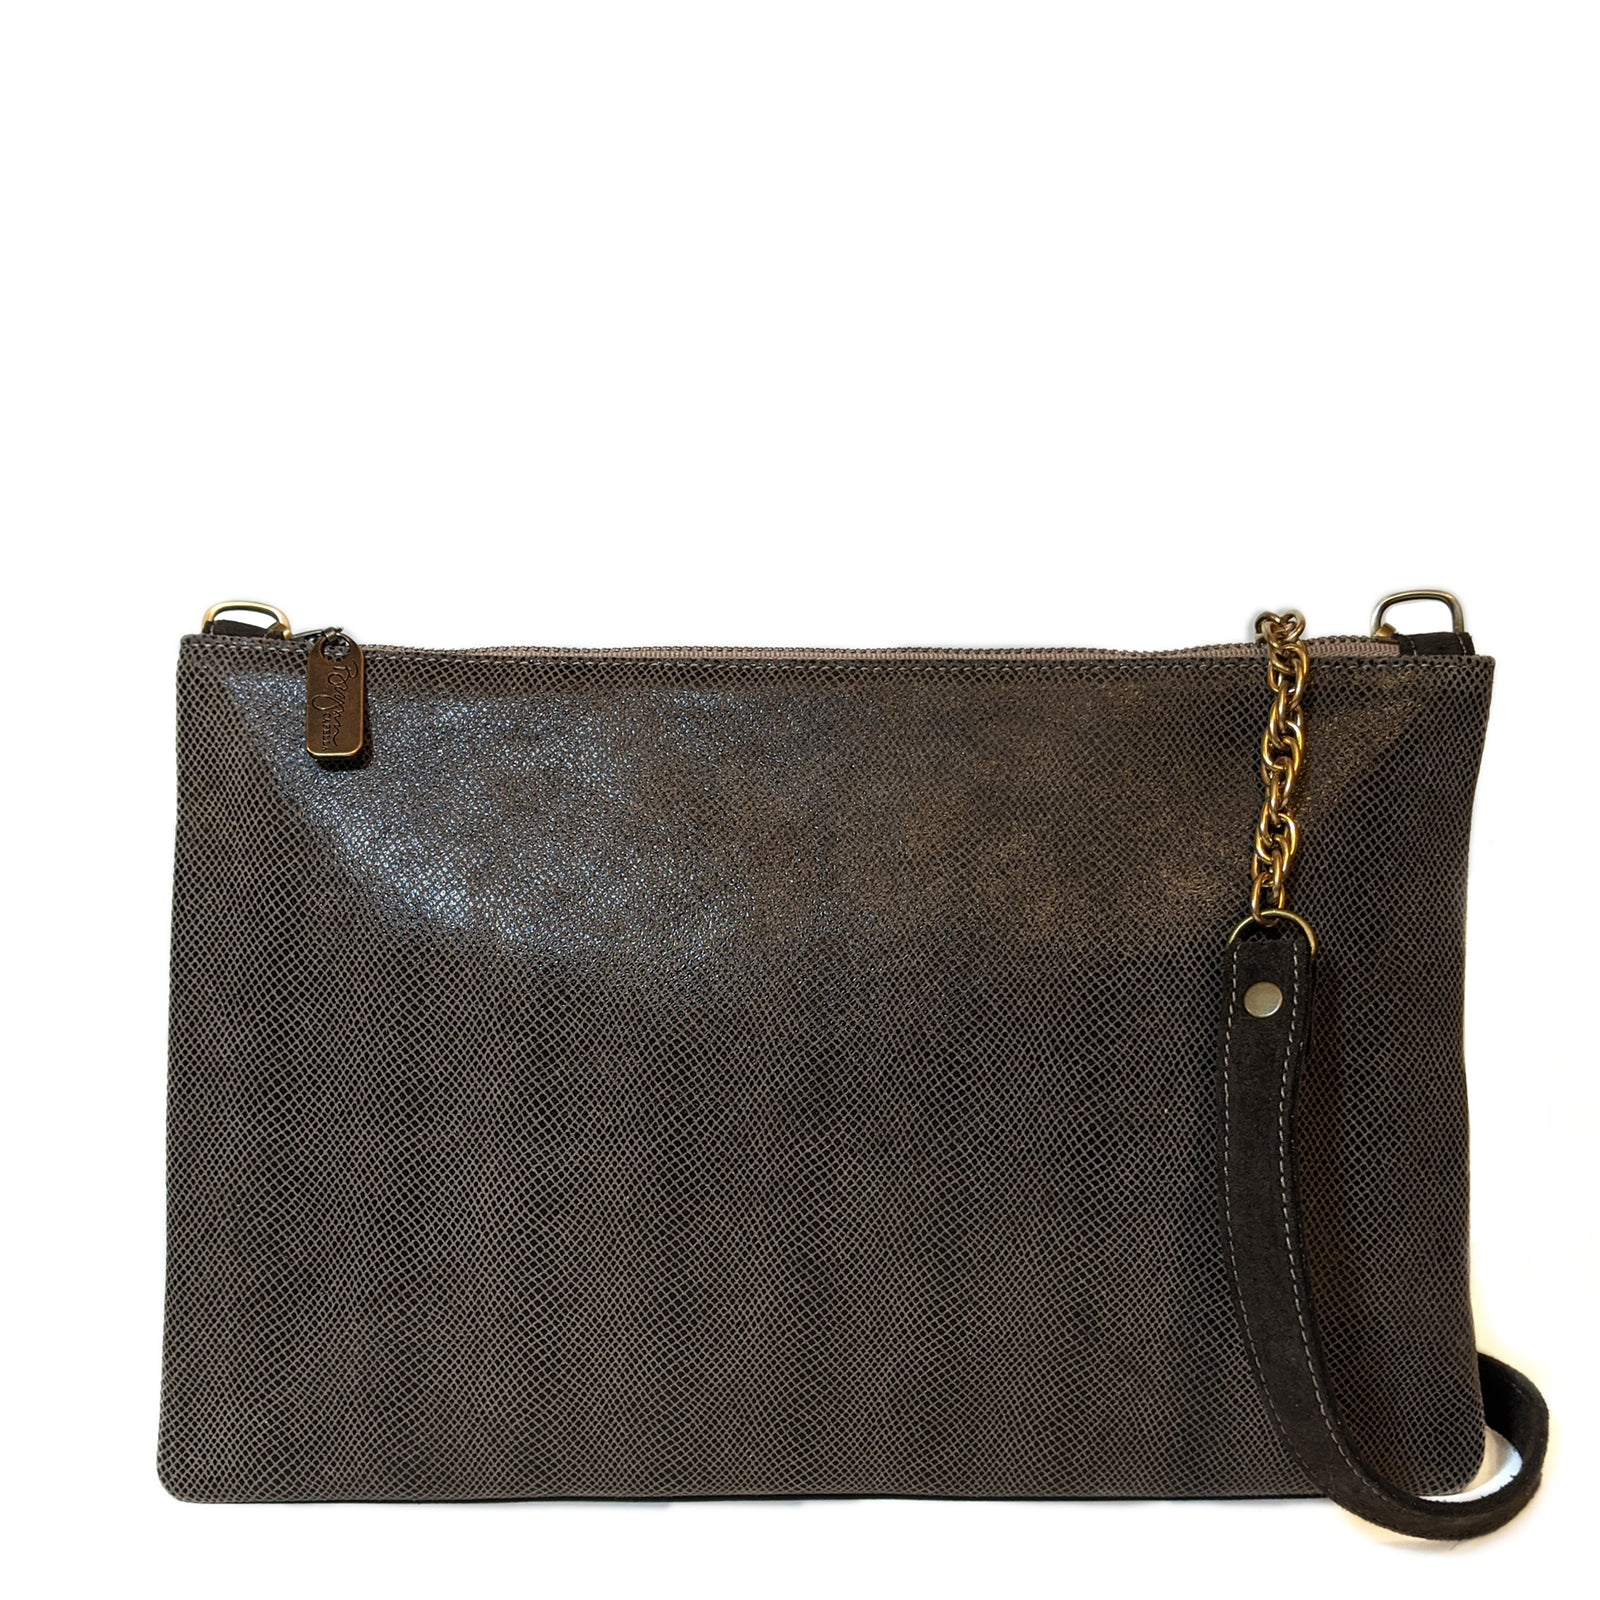 Nikki Clutch/Crossbody - Chocolate Boa